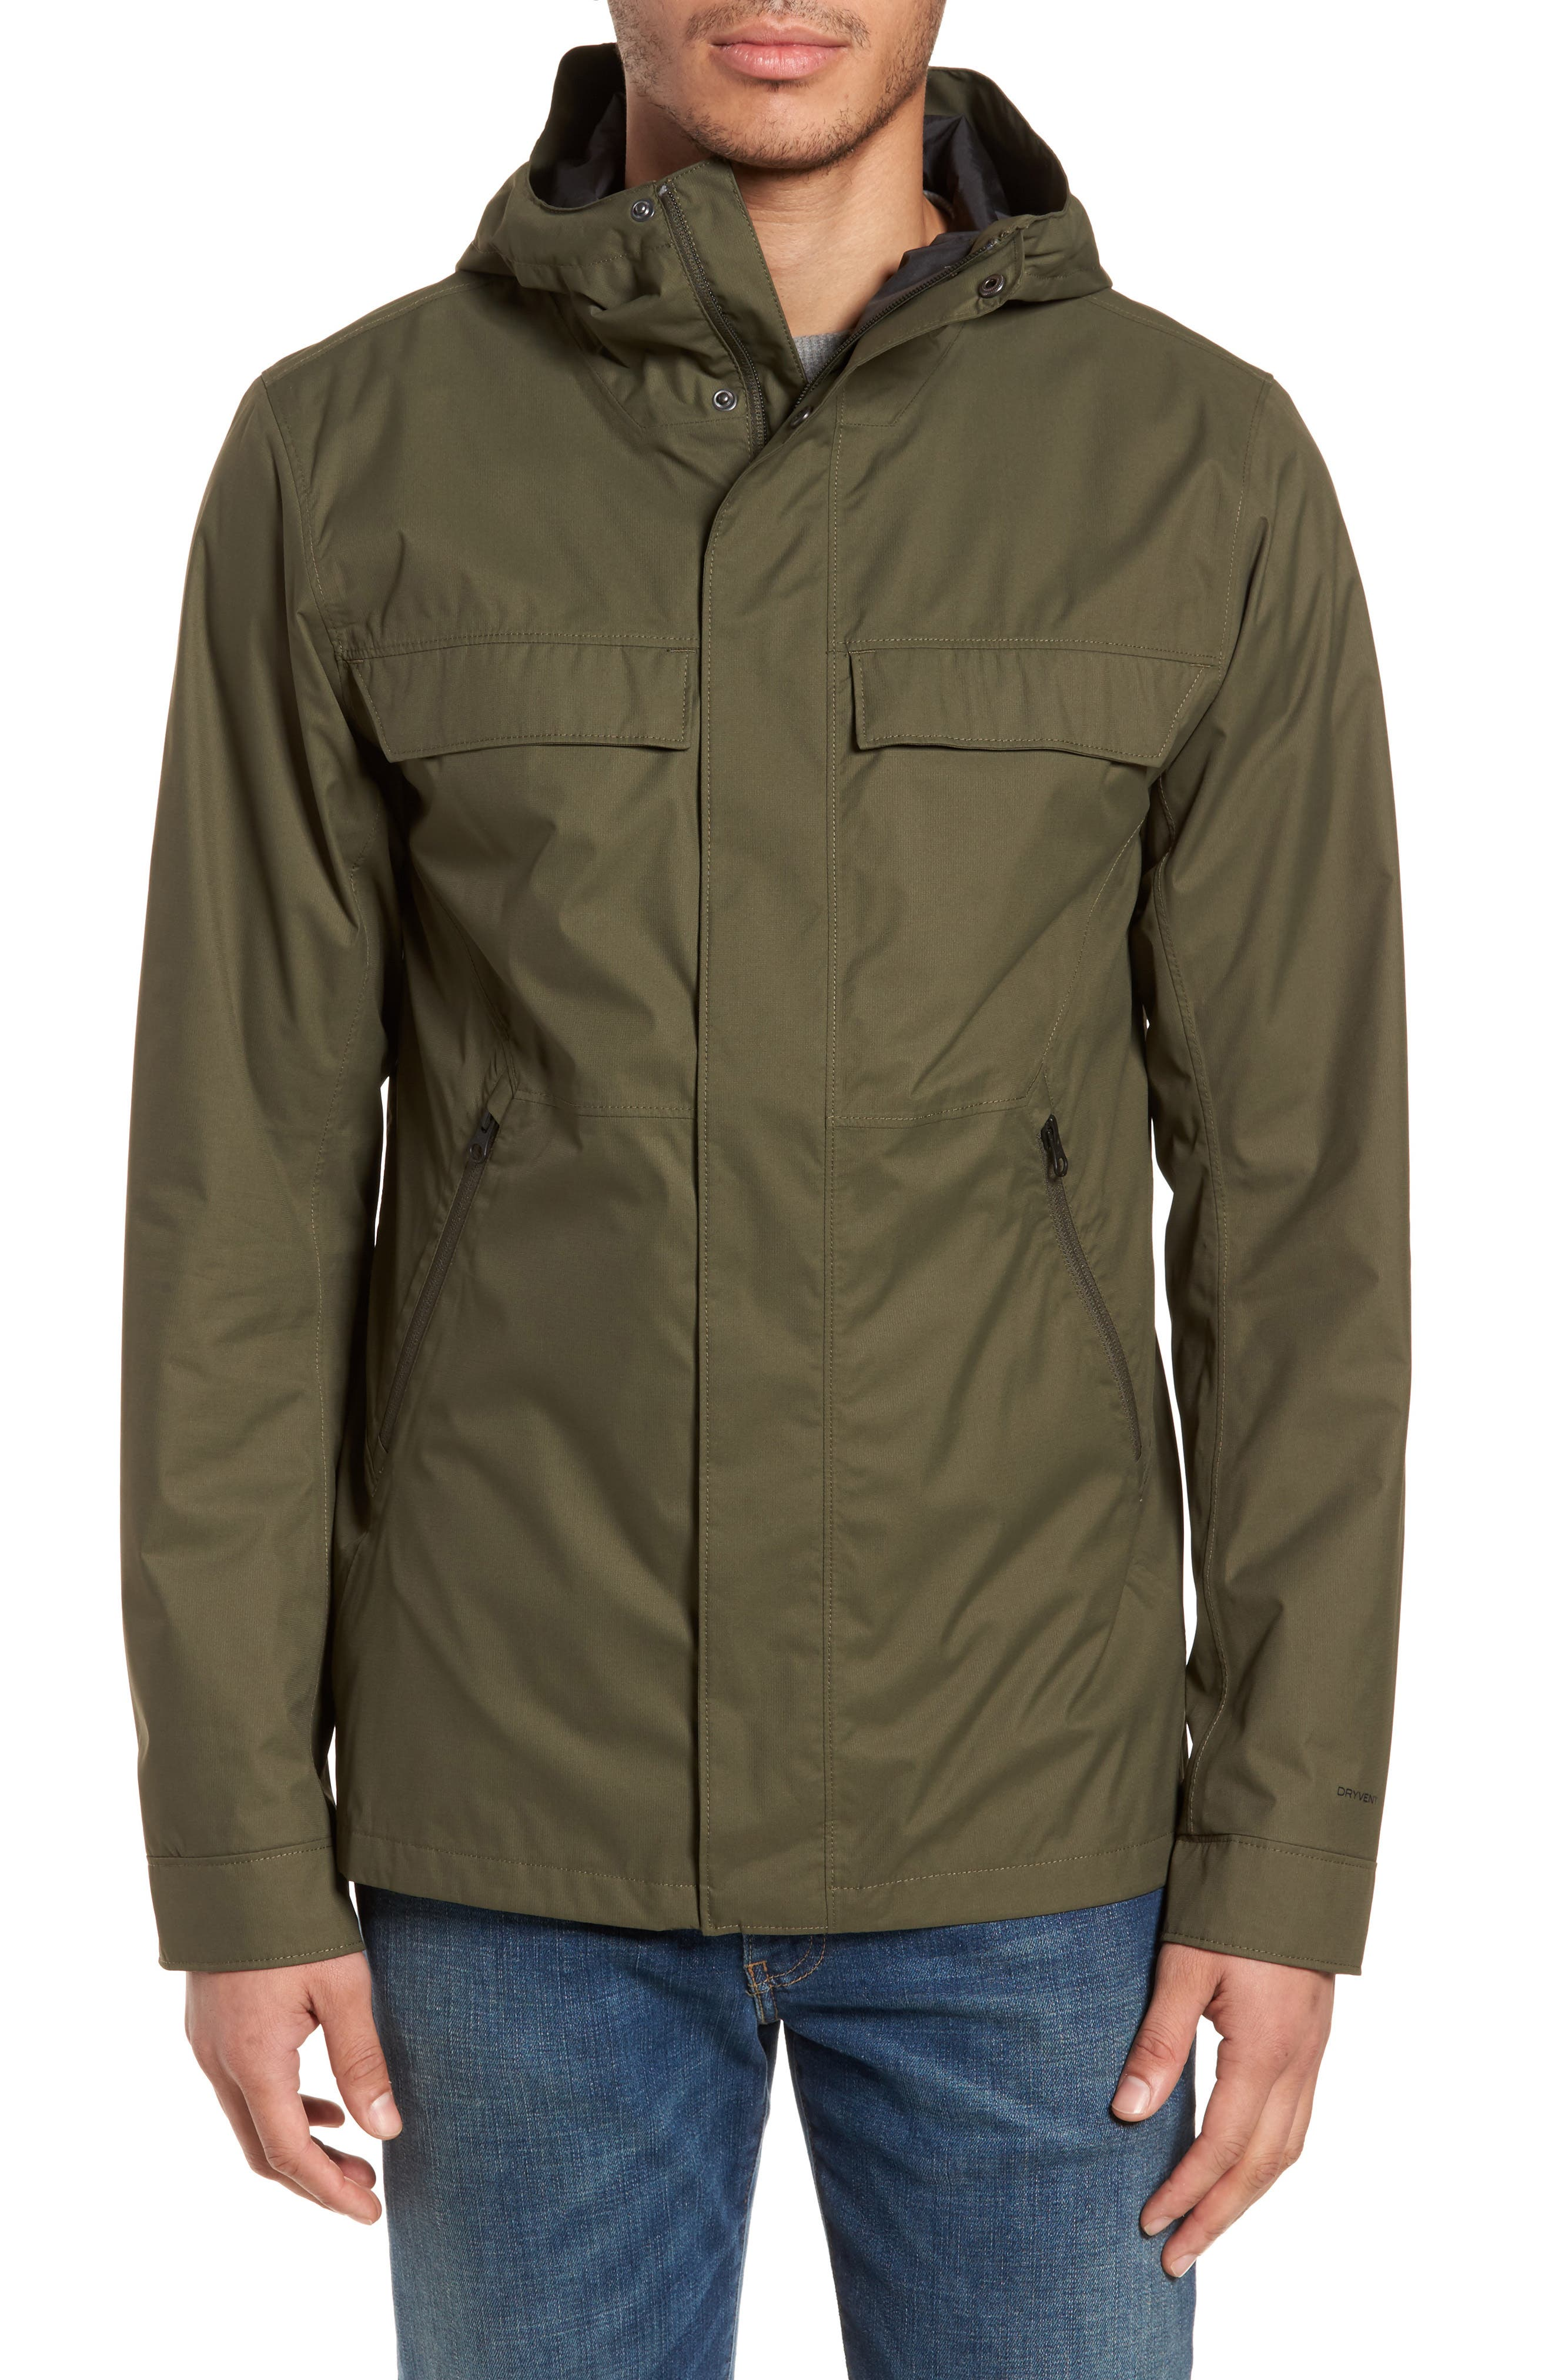 Jenison II Insulated Waterproof Jacket,                             Alternate thumbnail 4, color,                             New Taupe Green